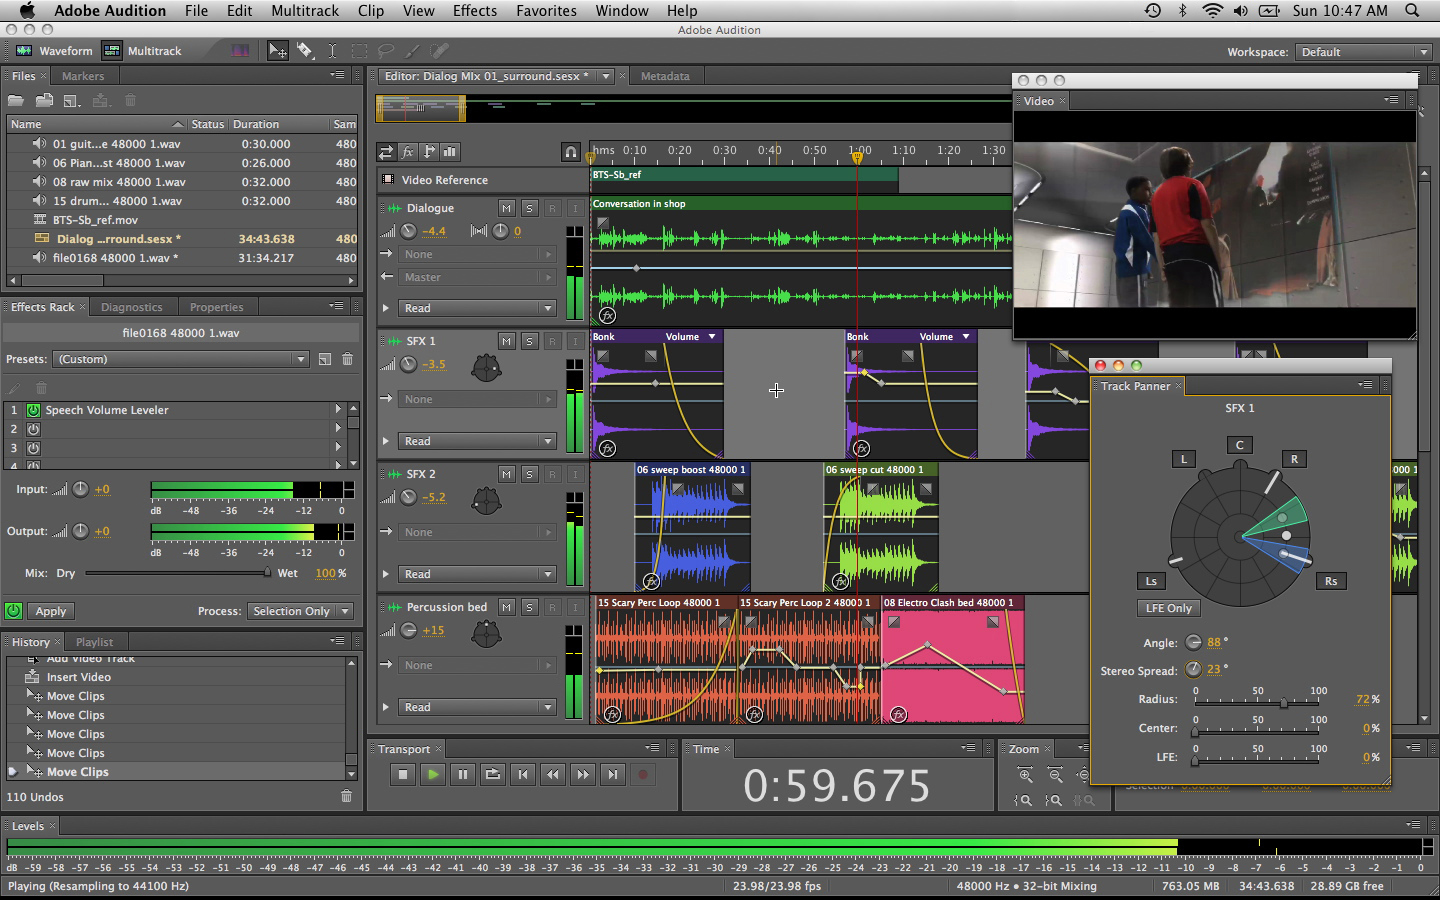 cs6 adobe audition